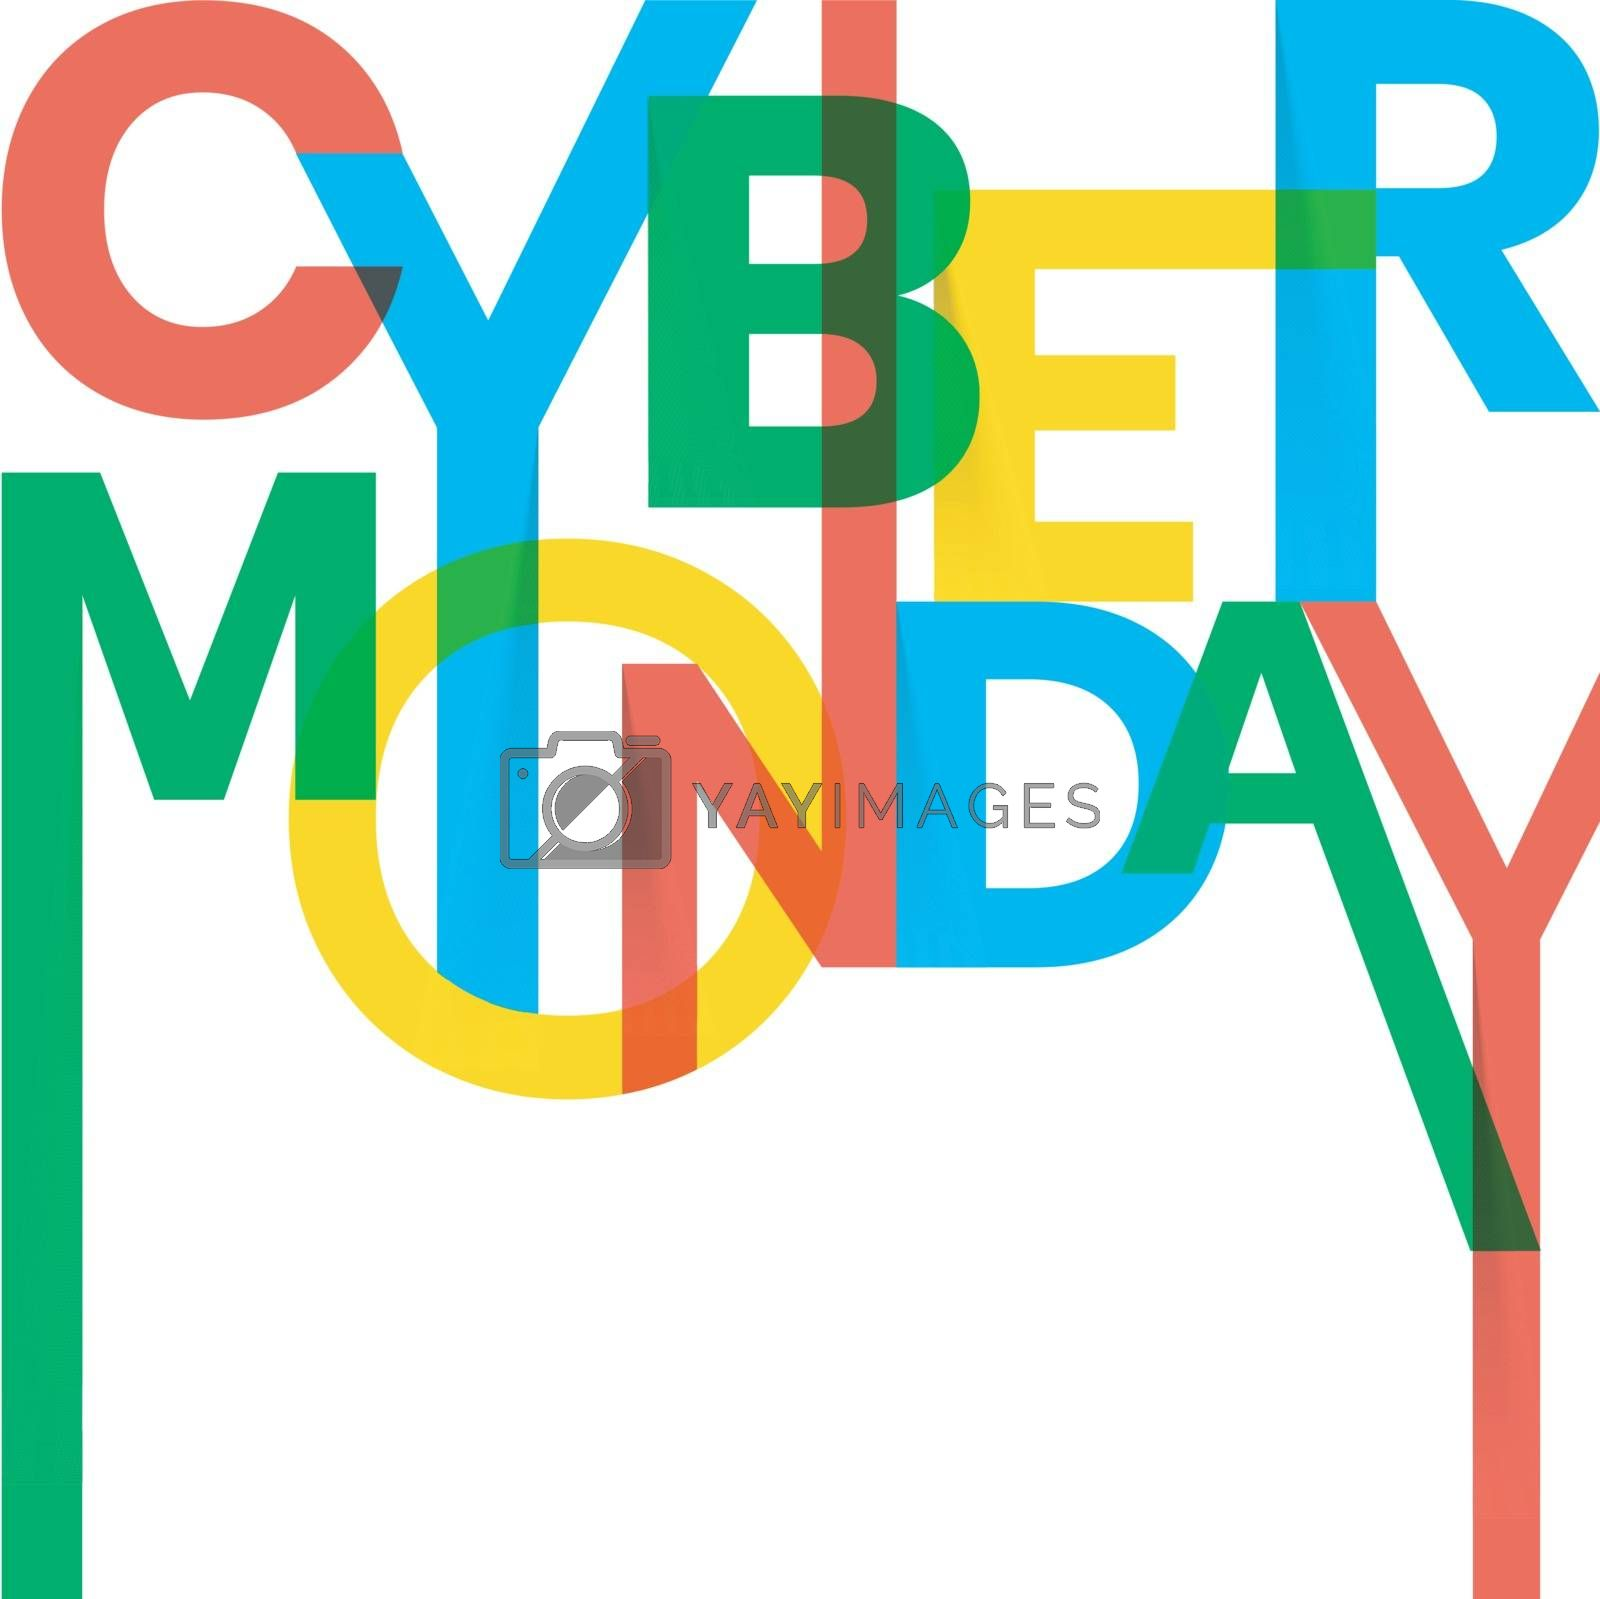 Stylish, colorful text Cyber Monday on white background. by aispl